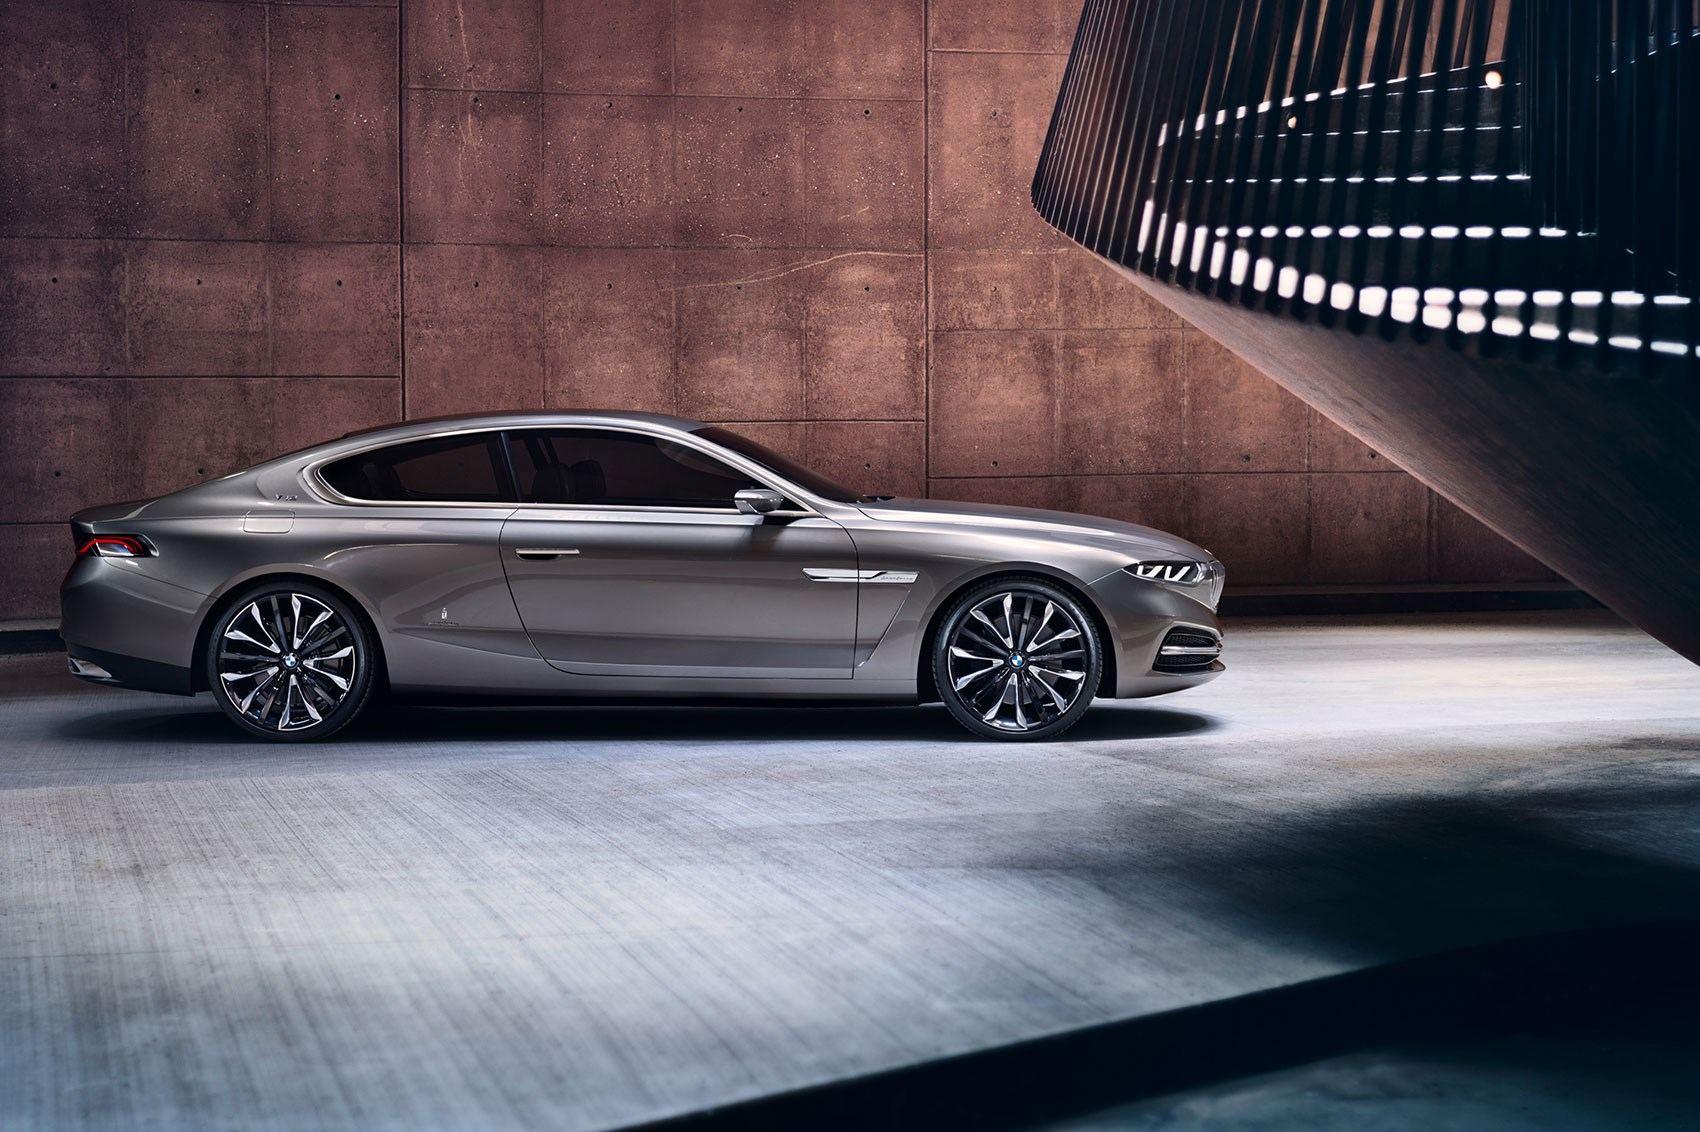 Production 9 Series Will Be Based Upon The Latest BMW 7